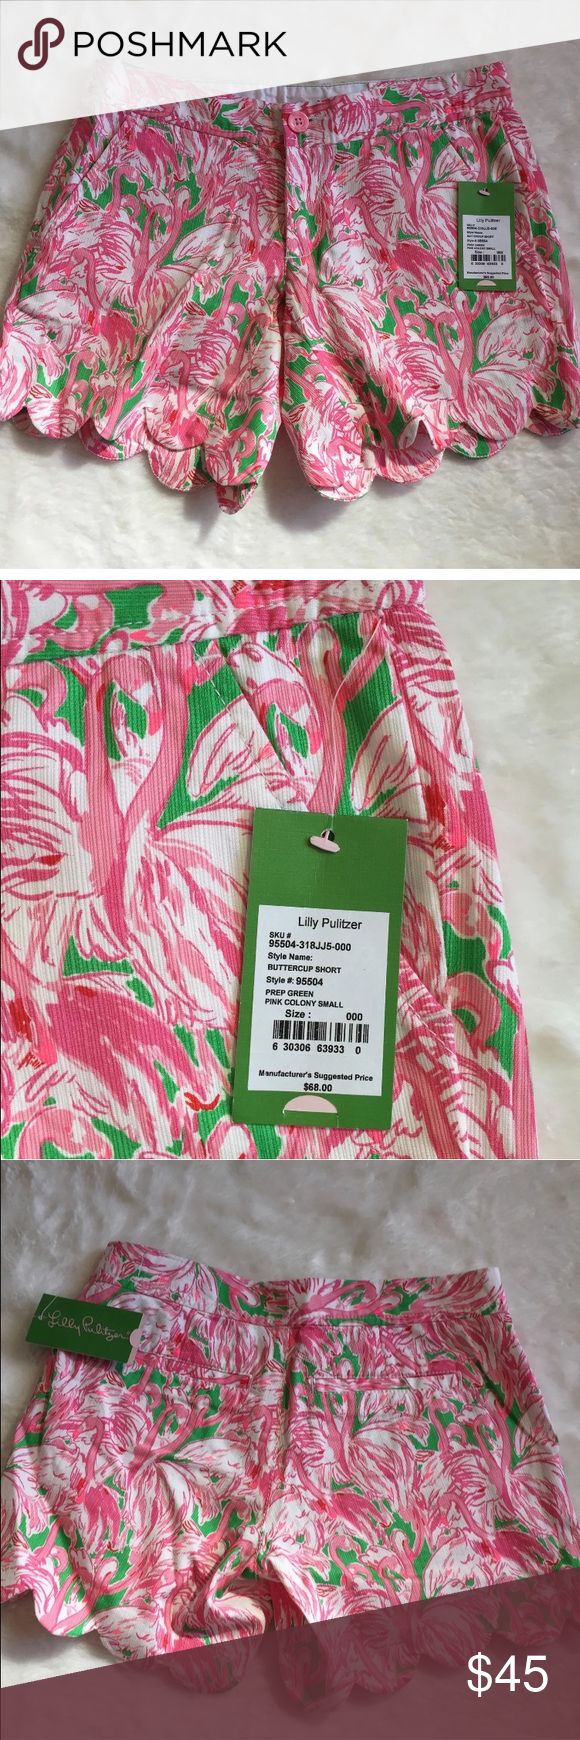 Lilly Pulitzer The Buttercup Scalloped Shorts NWT Lilly Pulitzer The Buttercup Short Prep Green Pink Colony NWT Lilly Pulitzer Shorts